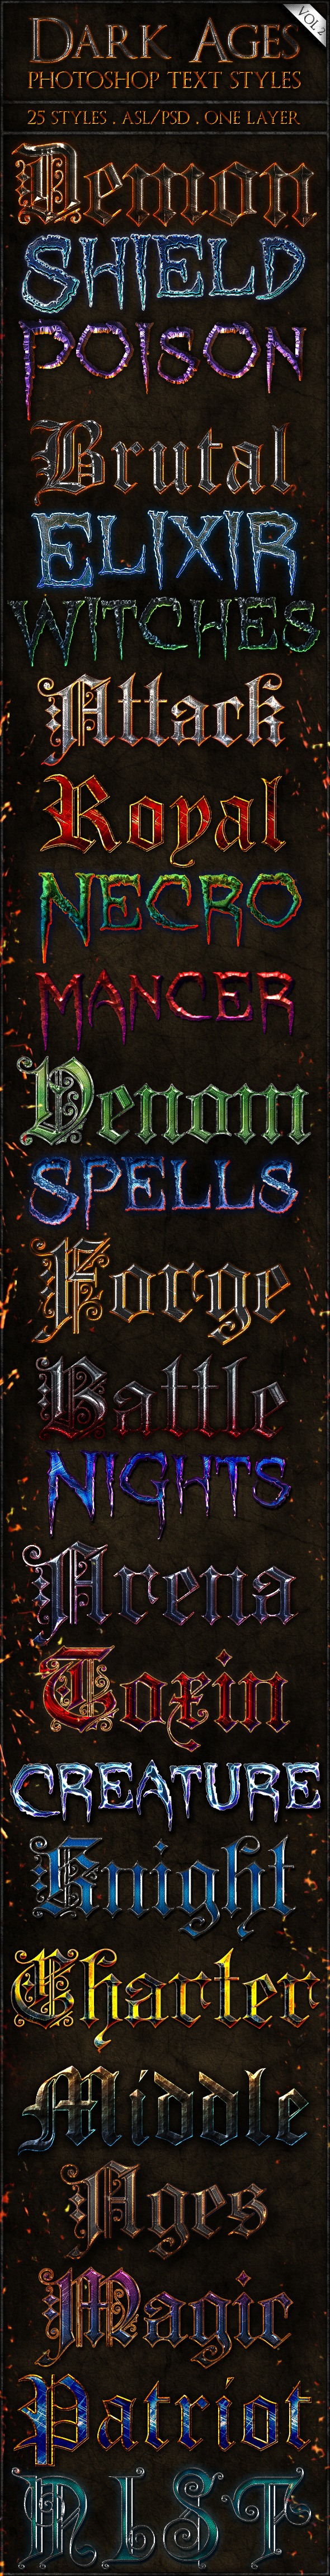 Dark Ages vol. 2 - Text Styles - Text Effects Styles